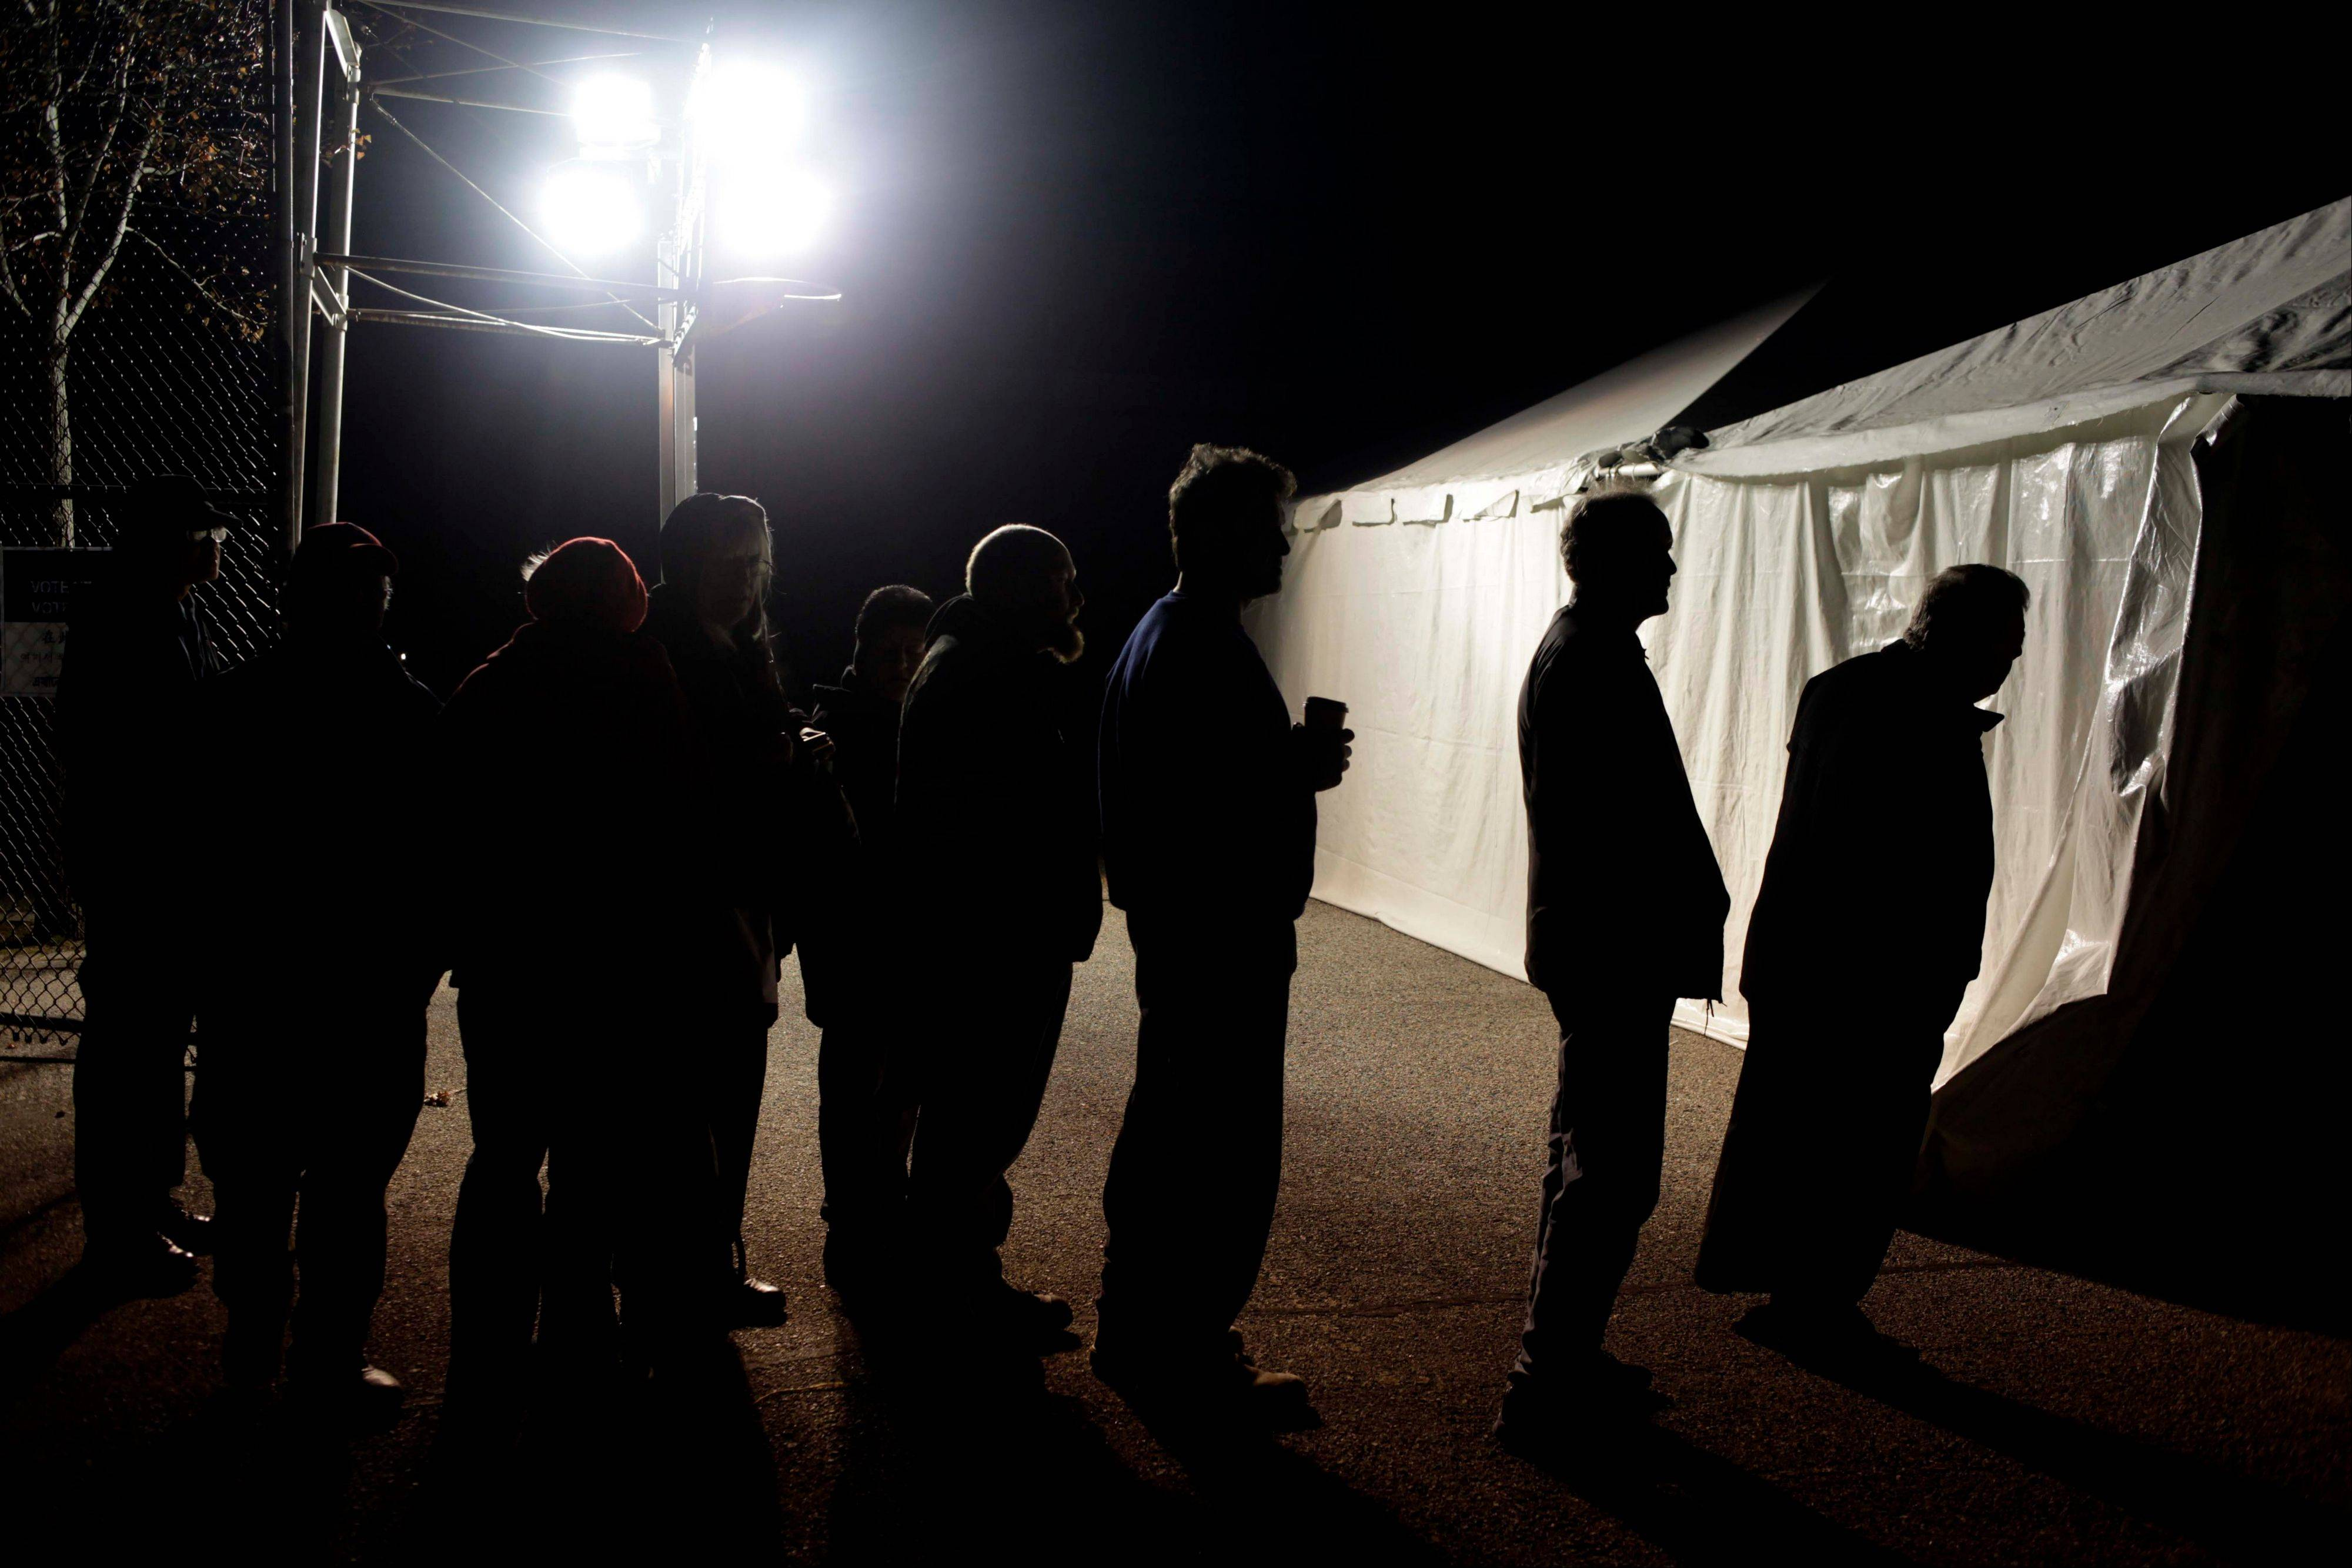 Under the lights of a generator, voters wait in line outside of a tent serving as a polling site in the Midland Beach section of Staten Island, New York, on Election Day Tuesday, Nov. 6, 2012. The original polling site, a school, was damaged by Superstorm Sandy.